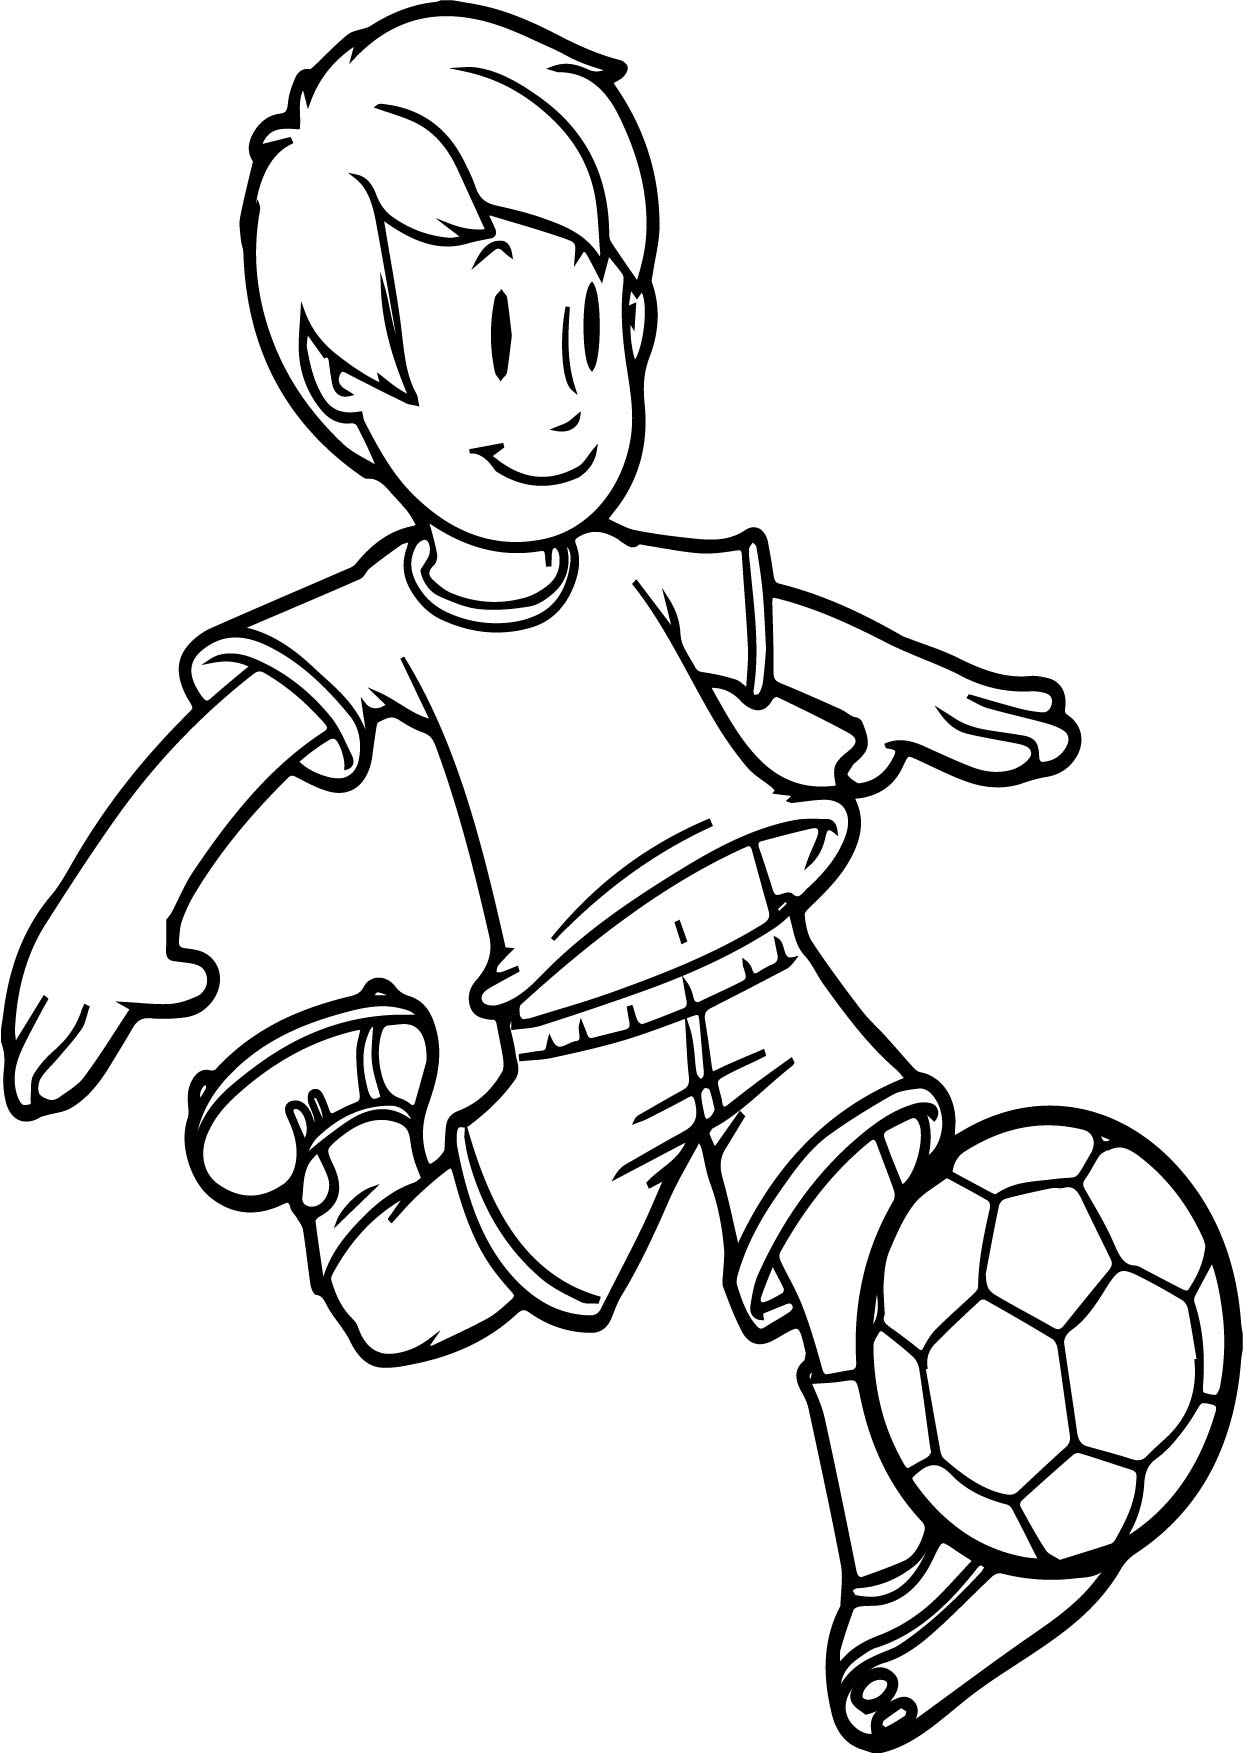 Boy soccer player clipart black and white picture transparent Awesome Football Clipart Black and White | Soccer Wallpaper picture transparent